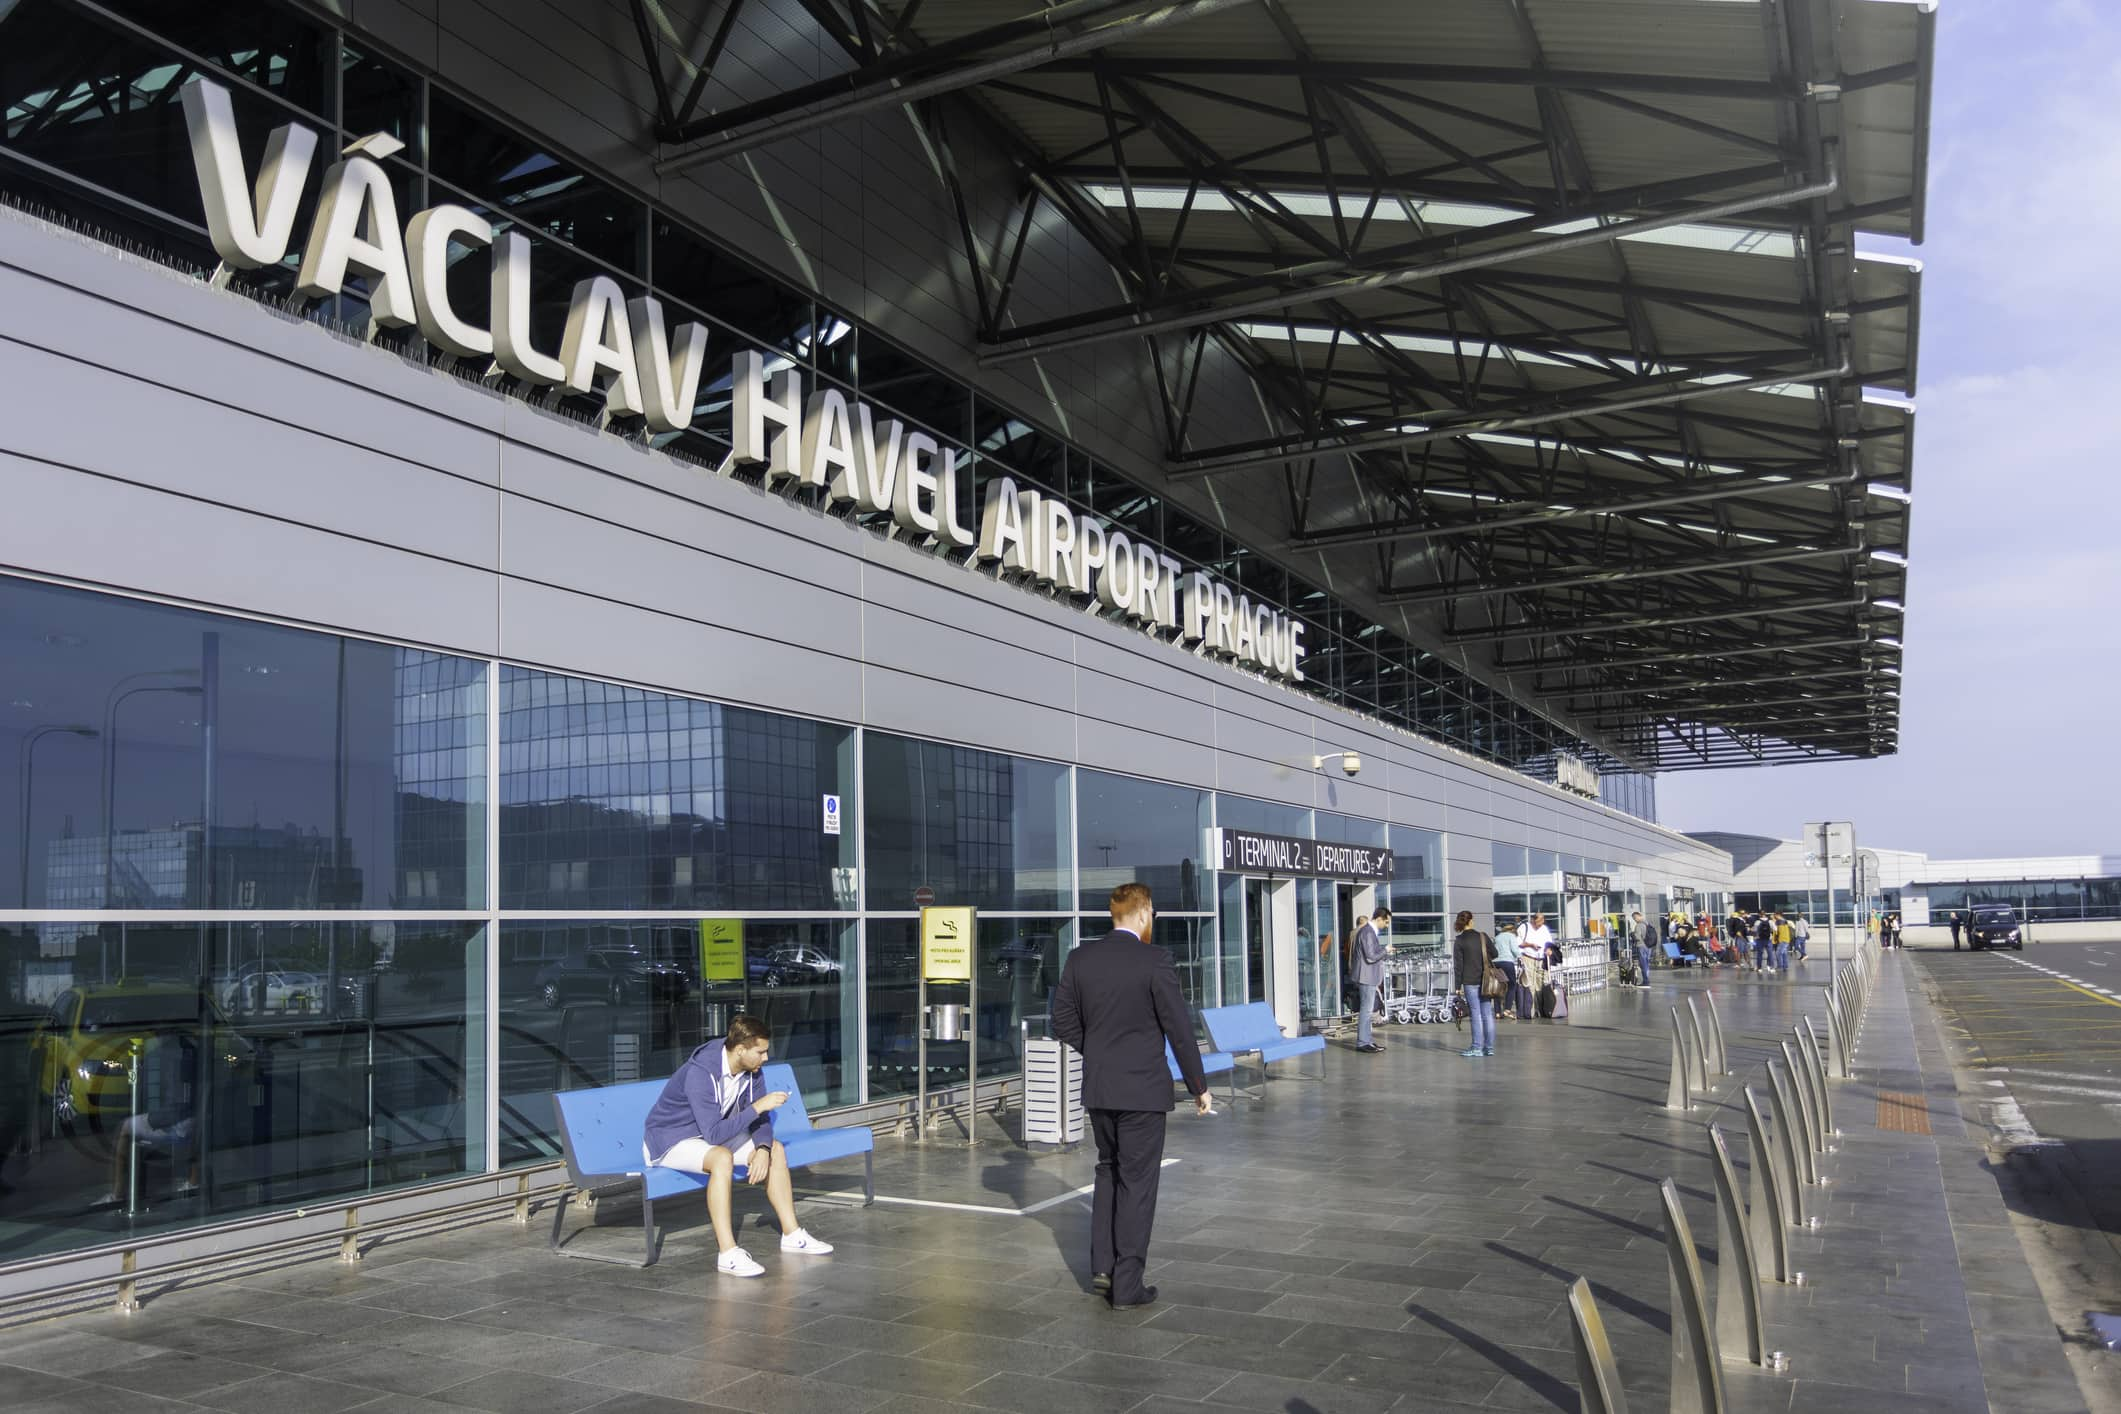 Václav Havel Airport Plans More Direct Flights to US, Asian Destinations